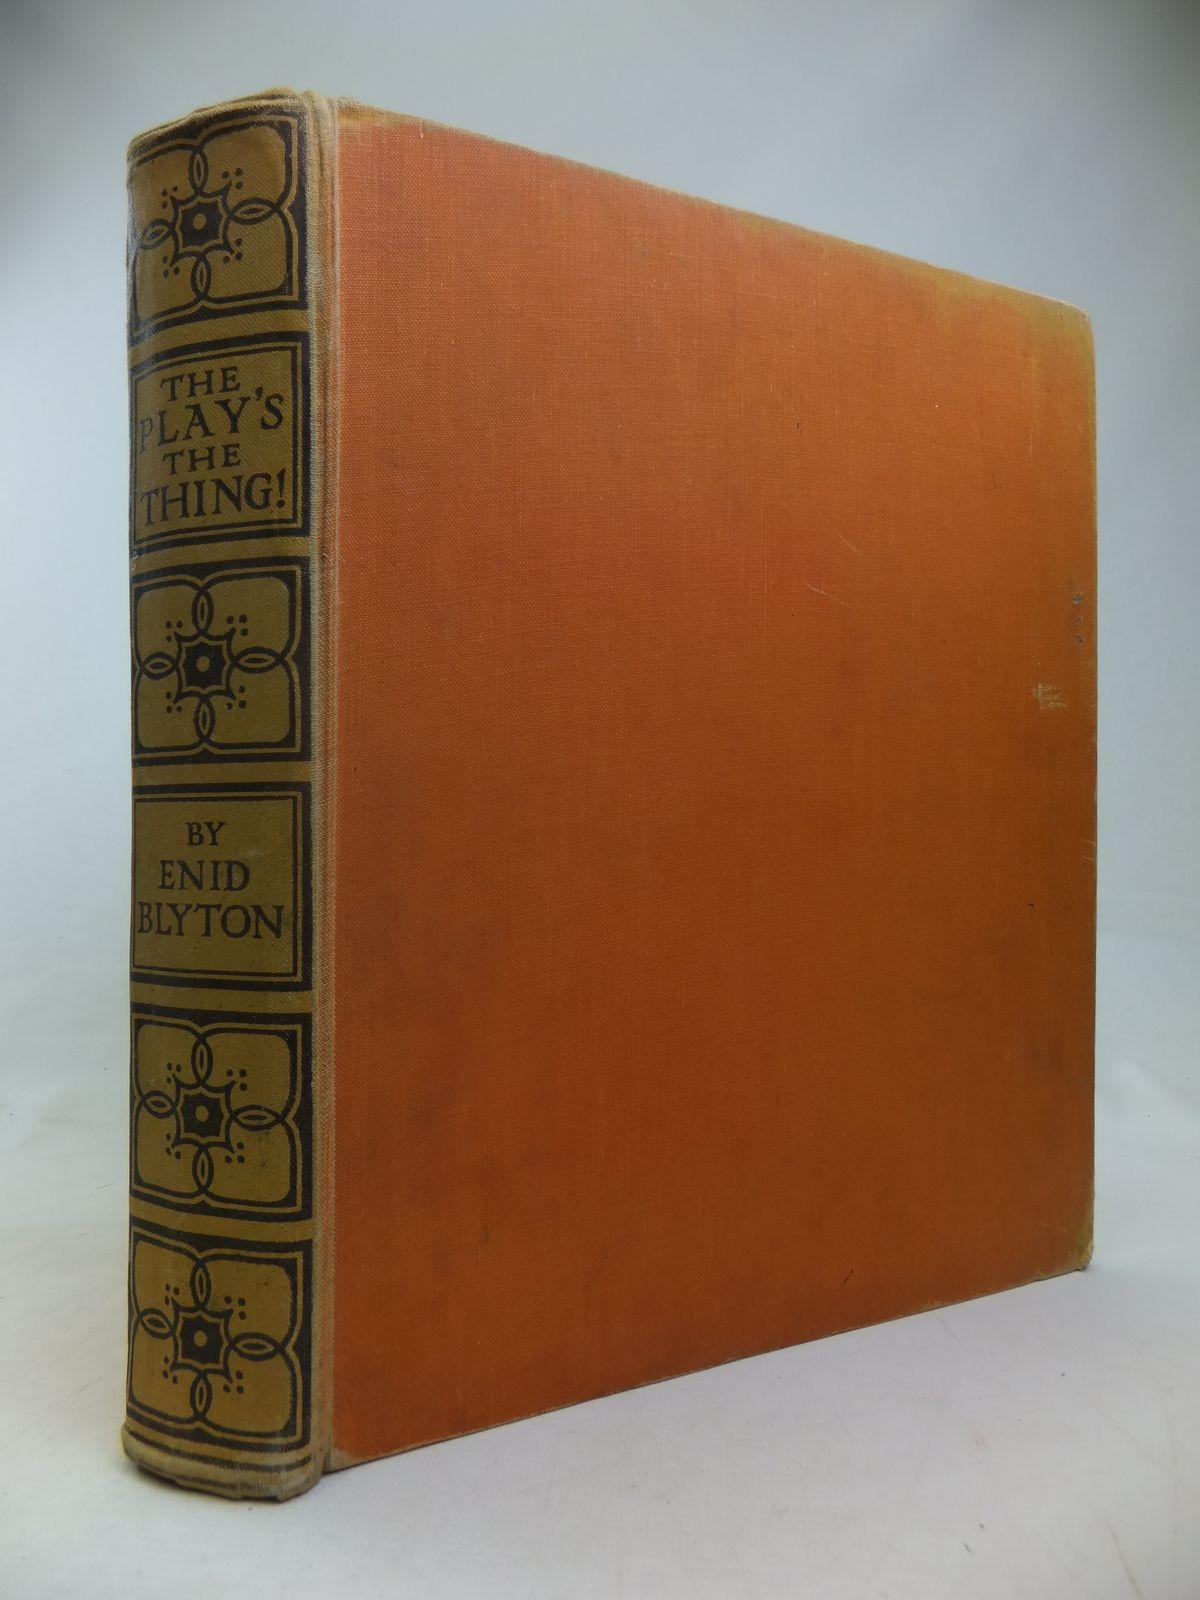 Photo of THE PLAY'S THE THING! written by Blyton, Enid illustrated by Bestall, Alfred published by The Home Library Book Company, George Newnes Limited (STOCK CODE: 2116905)  for sale by Stella & Rose's Books